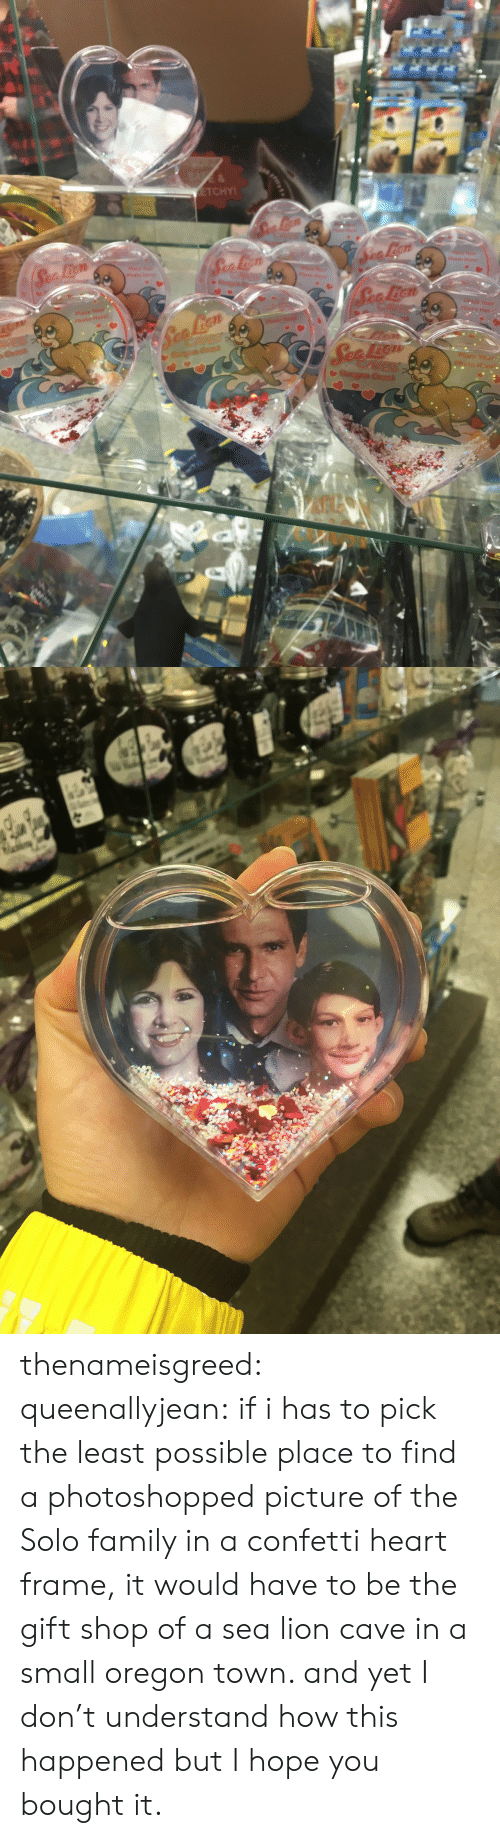 the-gift-shop: 7t  Her thenameisgreed:  queenallyjean: if i has to pick the least possible place to find a photoshopped picture of the Solo family in a confetti heart frame, it would have to be the gift shop of a sea lion cave in a small oregon town. and yet I don't understand how this happened but I hope you bought it.